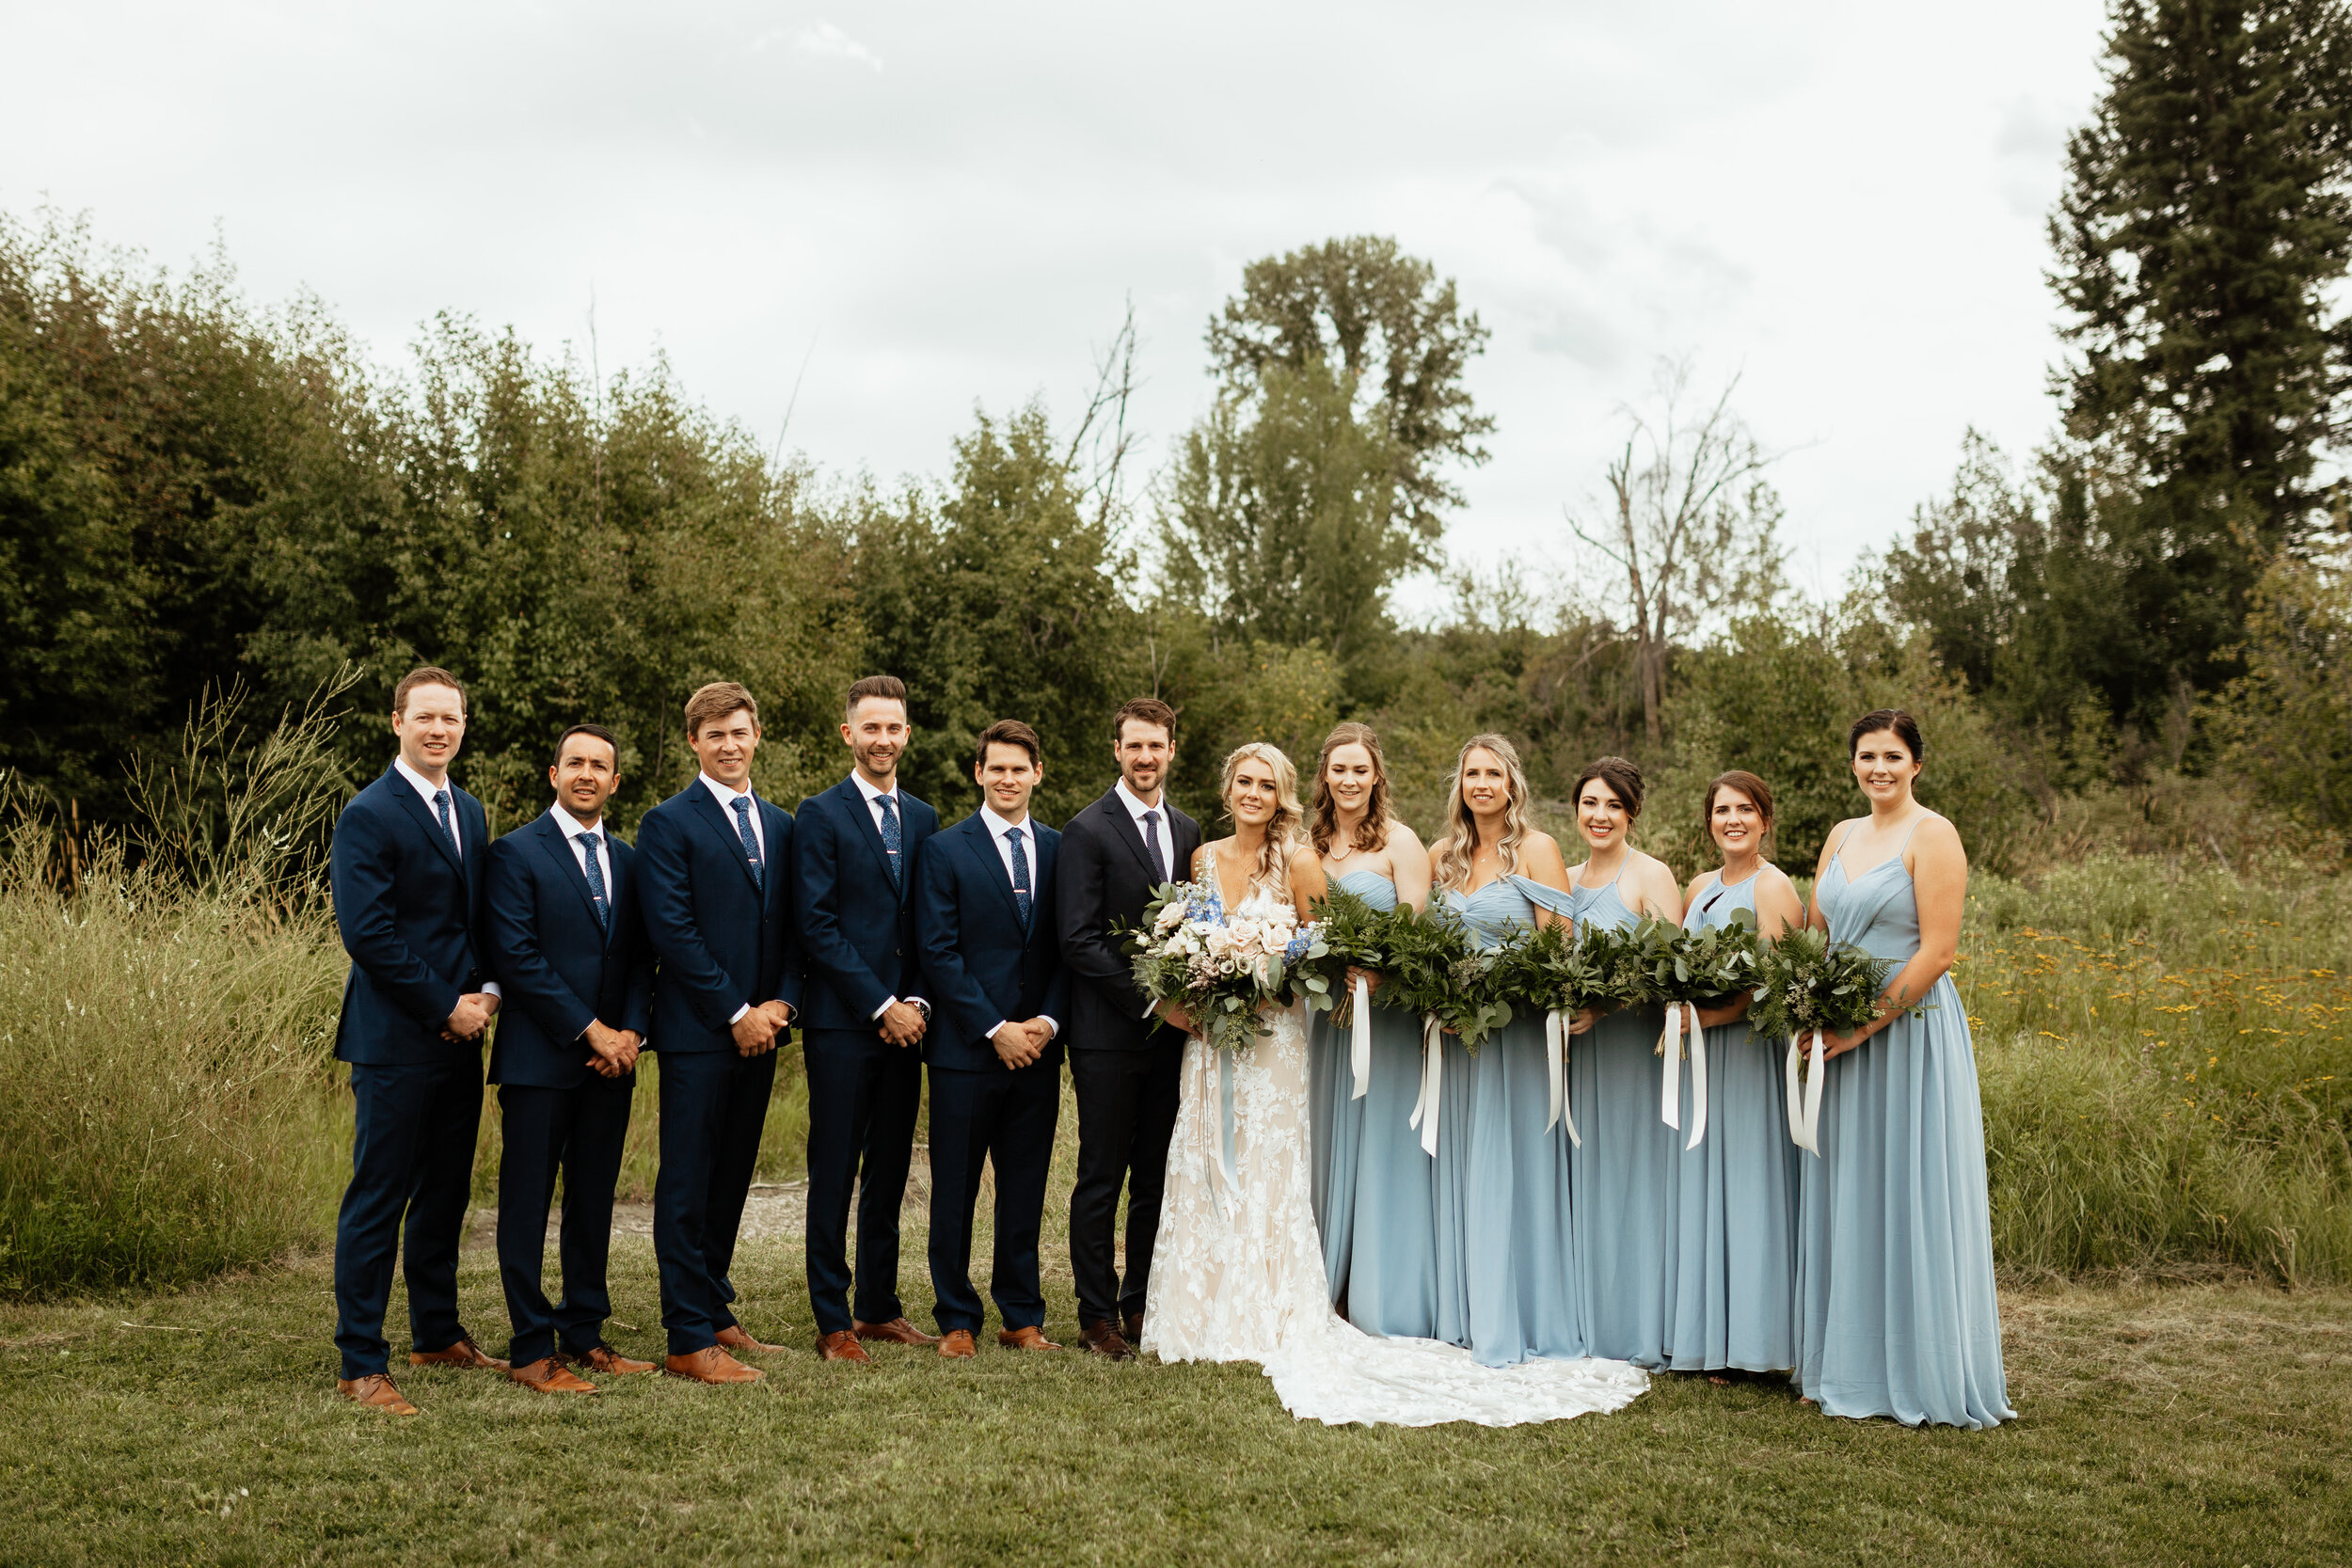 Matt + Jordanne 4 - Bridal Party Portraits-17.jpg